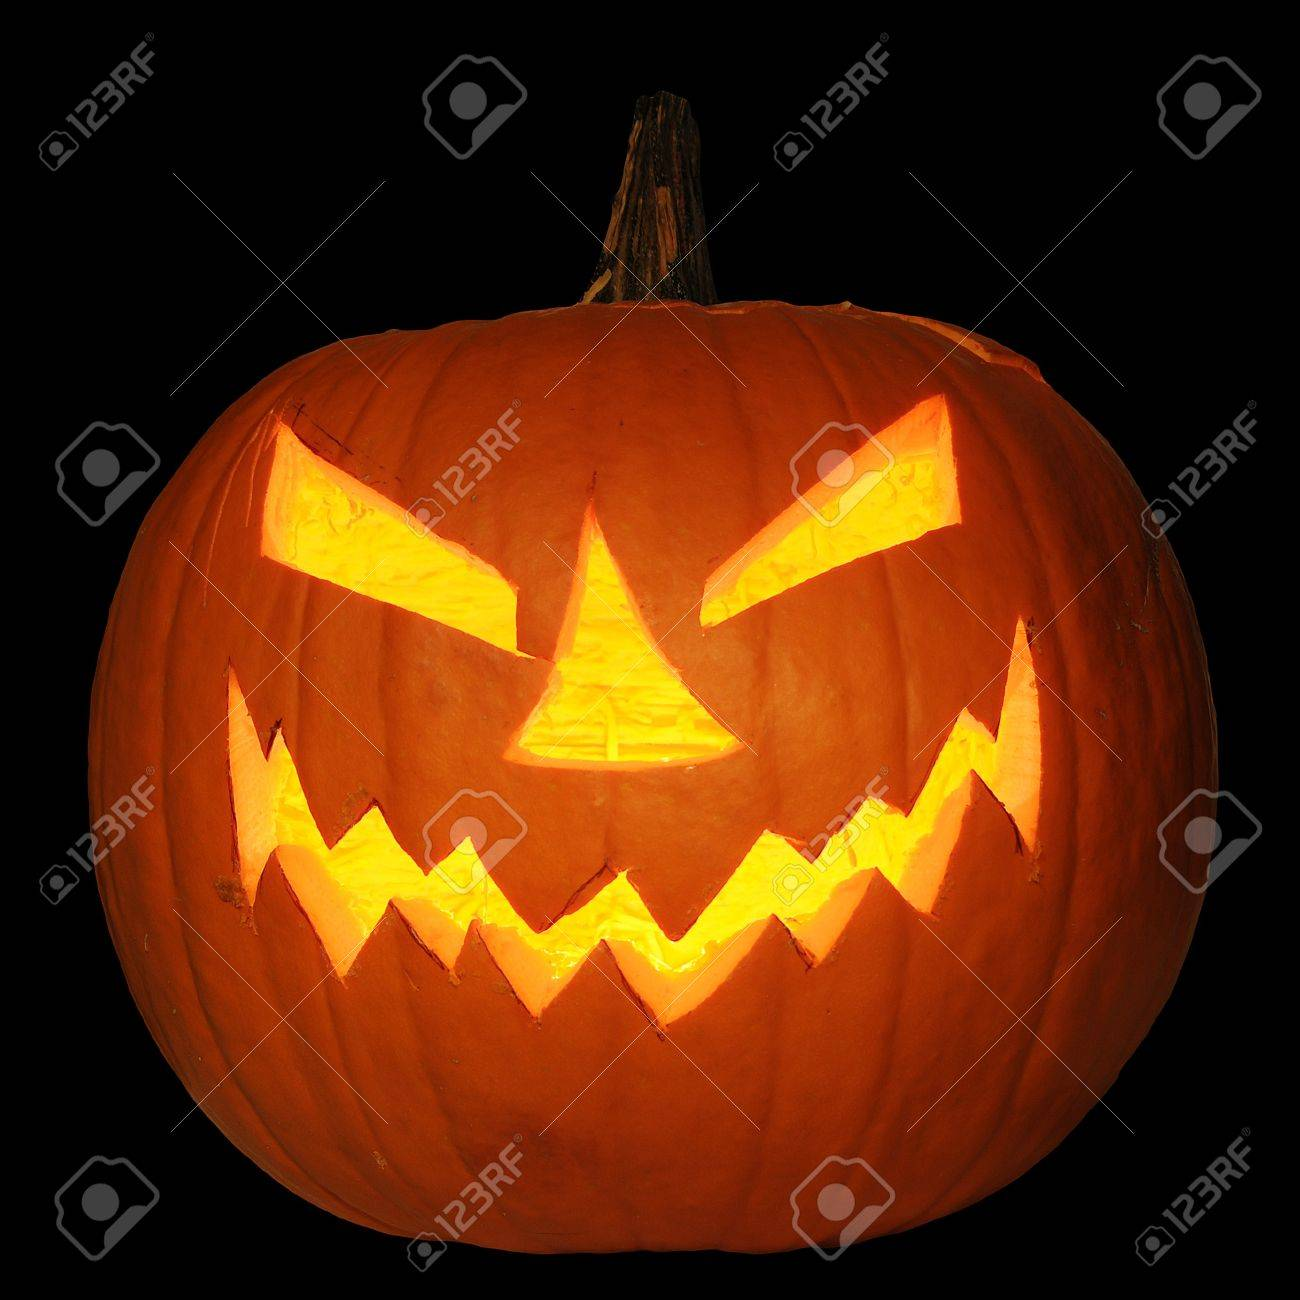 Scary Halloween Pumpkin Jack O Lantern Candle Lit Isolated On Stock Photo Picture And Royalty Free Image Image 8307502